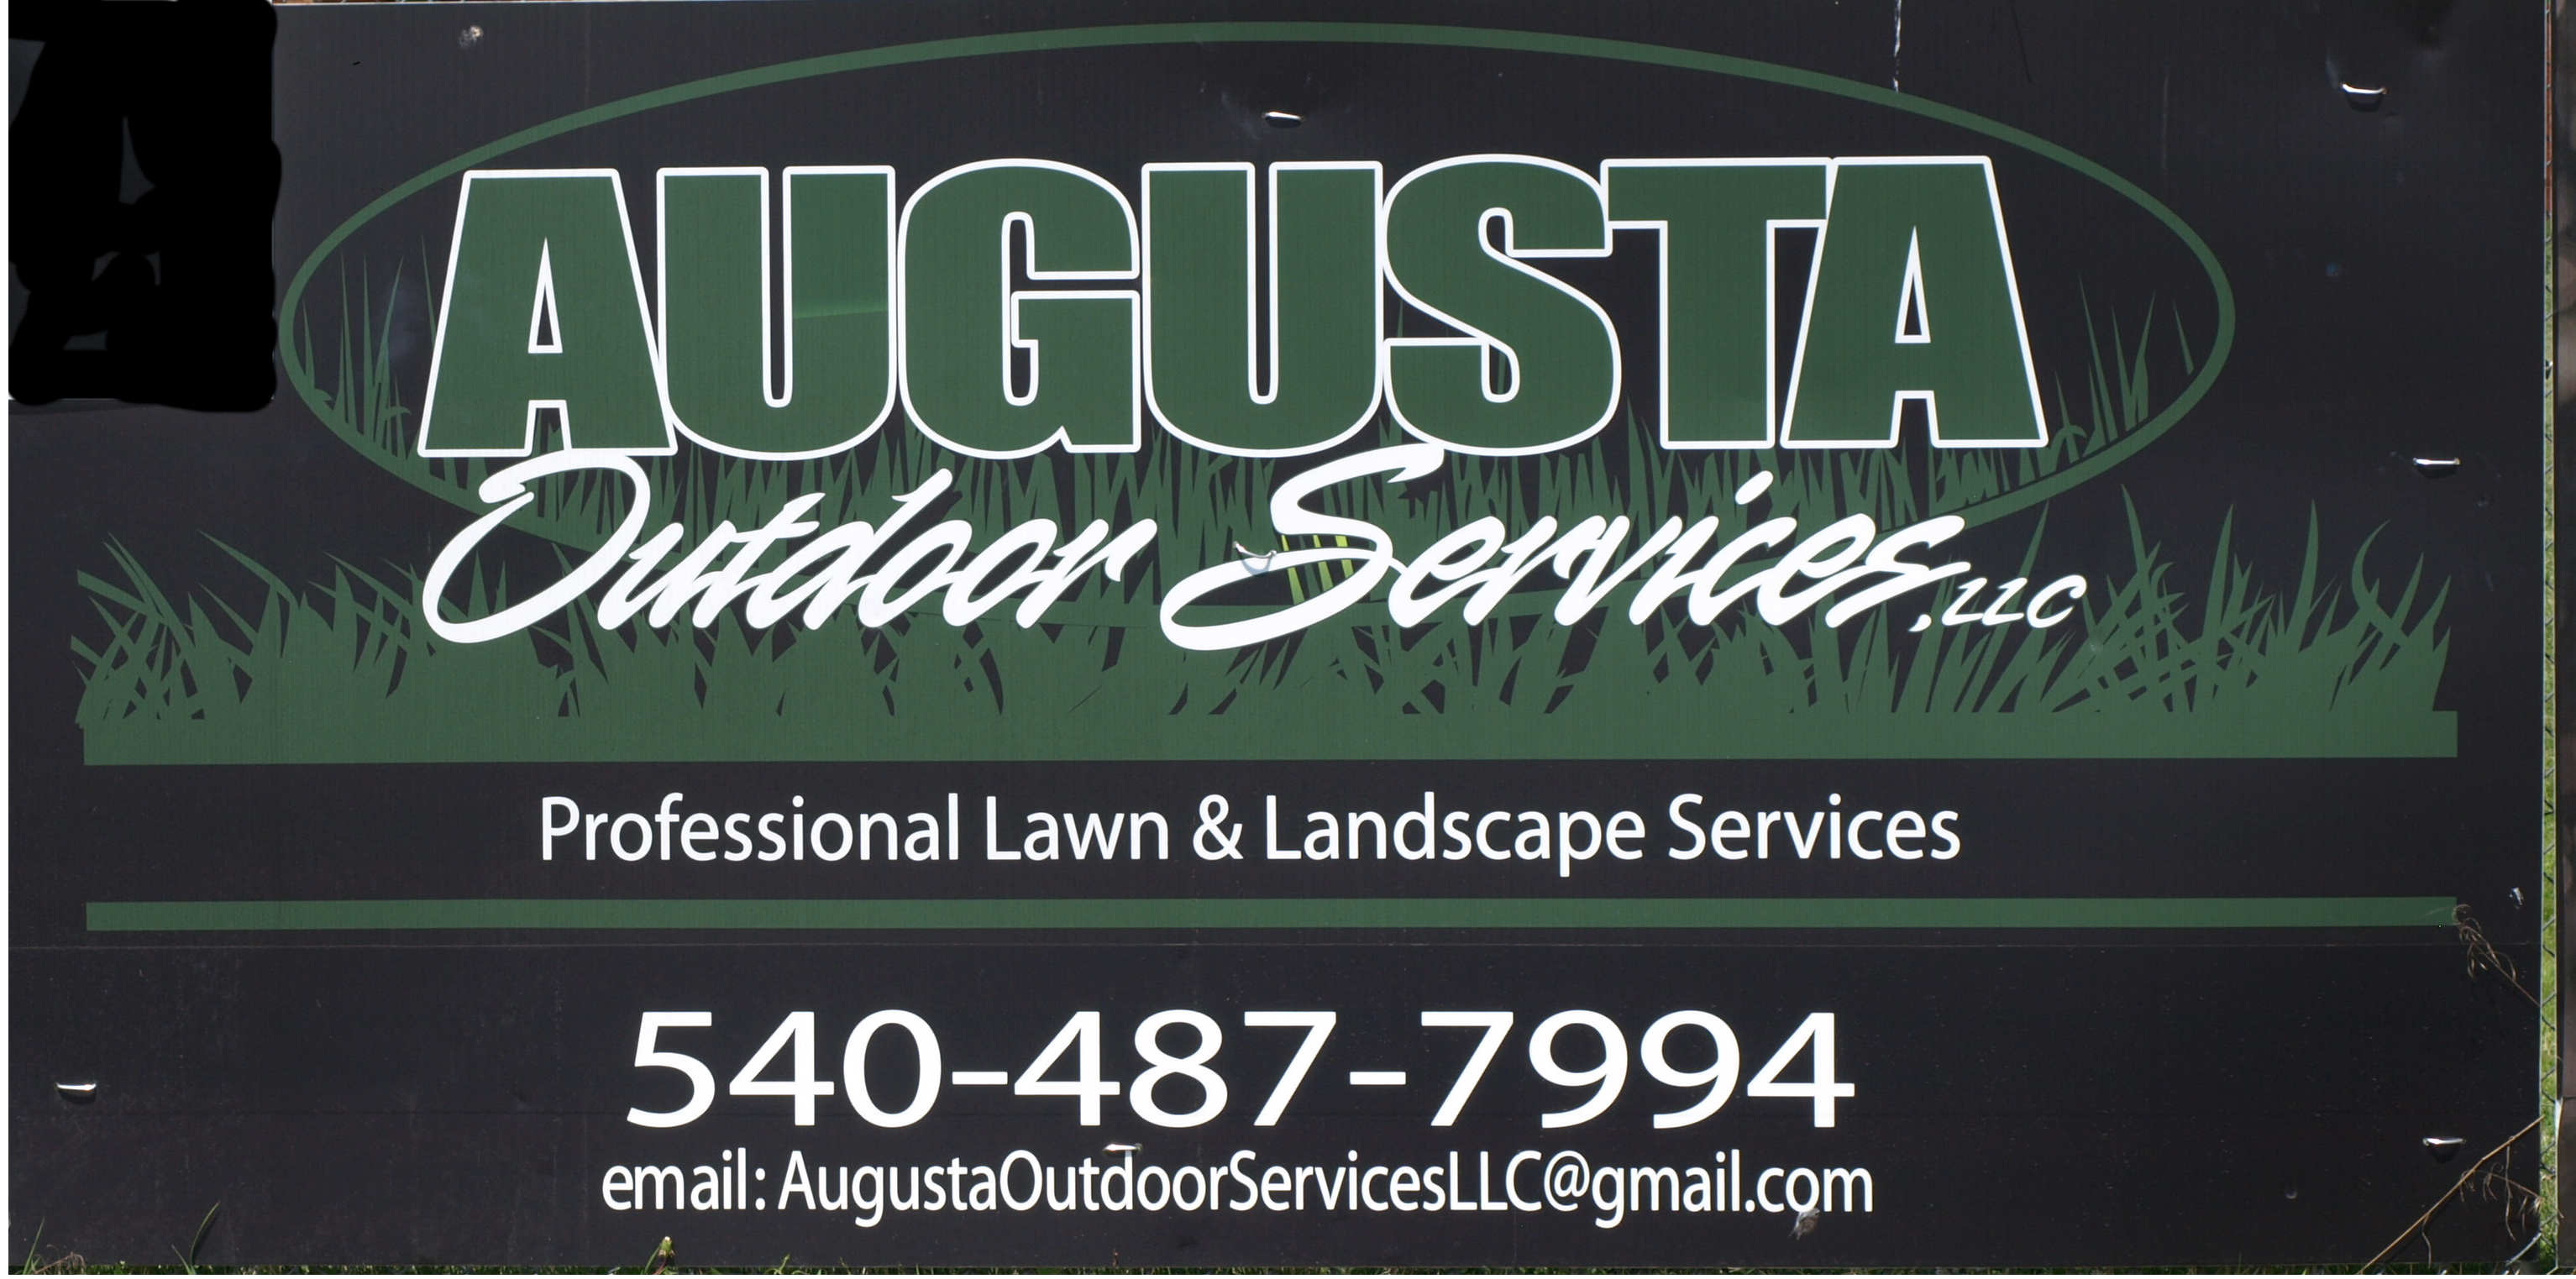 Augusta Outdoors